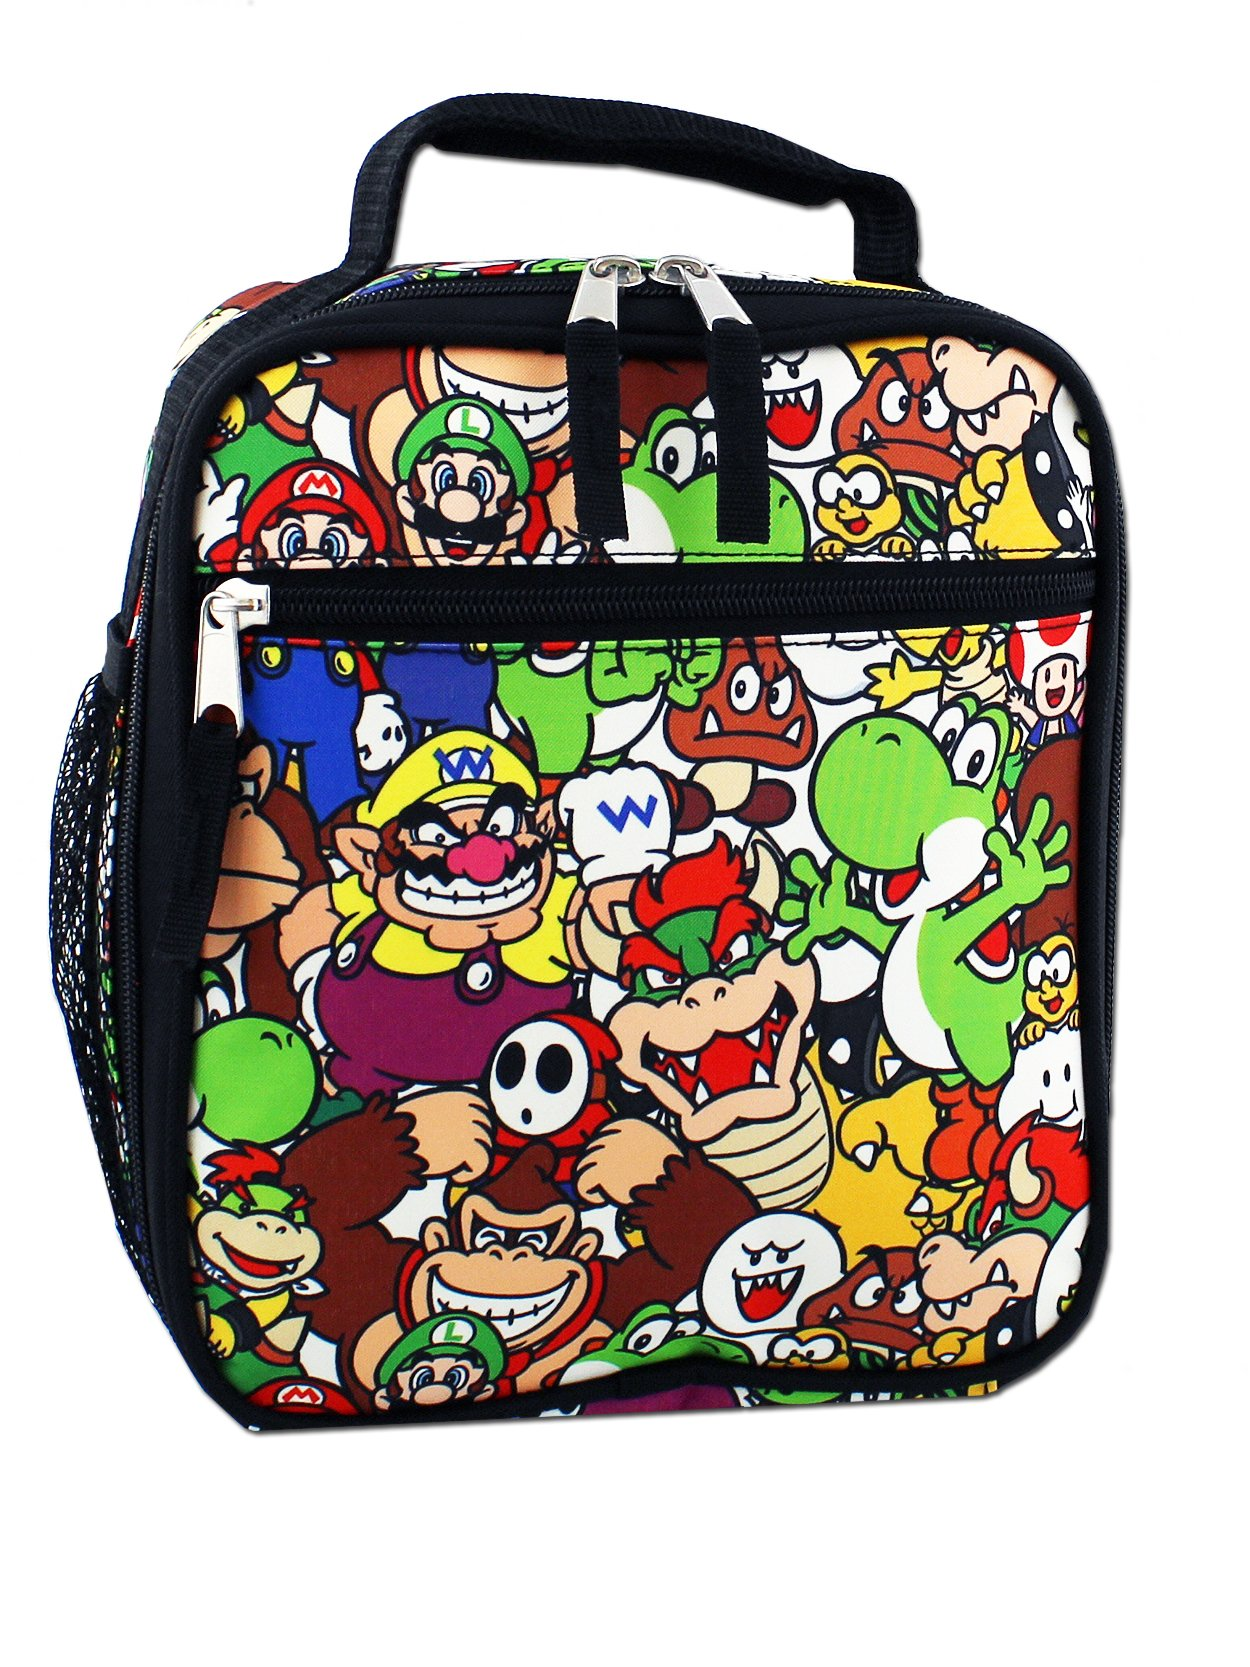 Super Mario Boys Girls Soft Insulated School Lunch Box (Black/Multi)